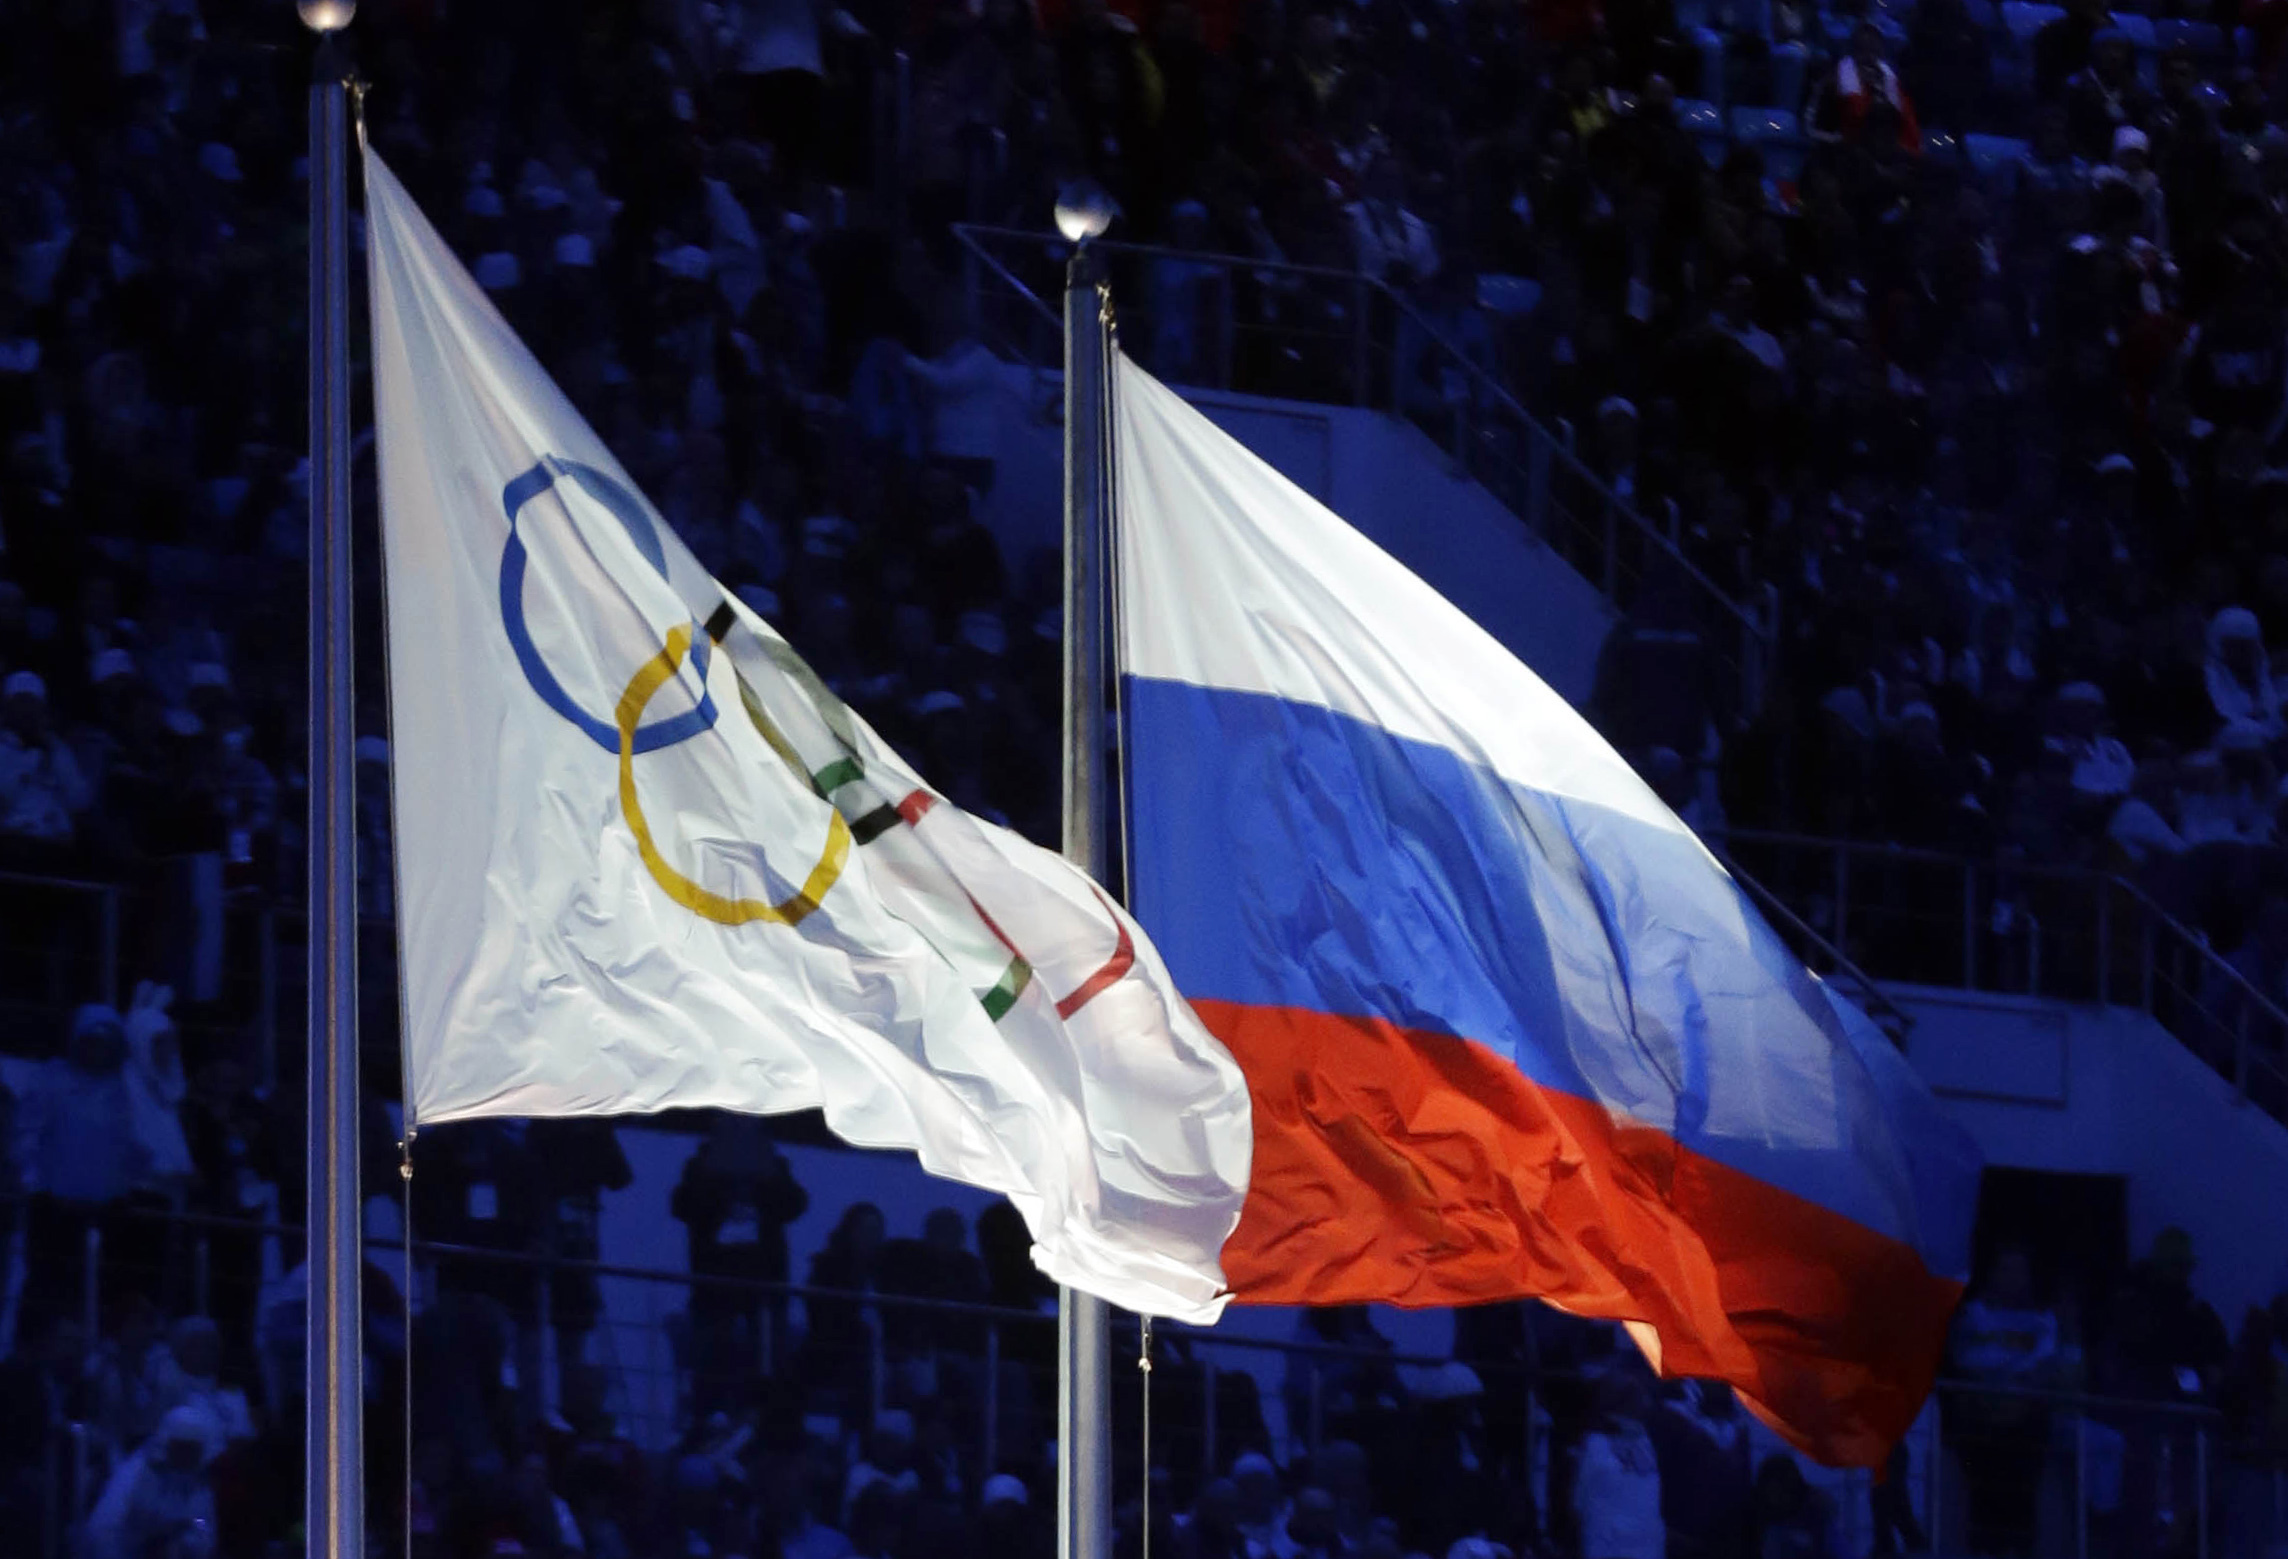 The Russian and the Olympic flags wave during the opening ceremony of the 2014 Winter Olympics in Sochi, Russia. Patrick Semansky/AP